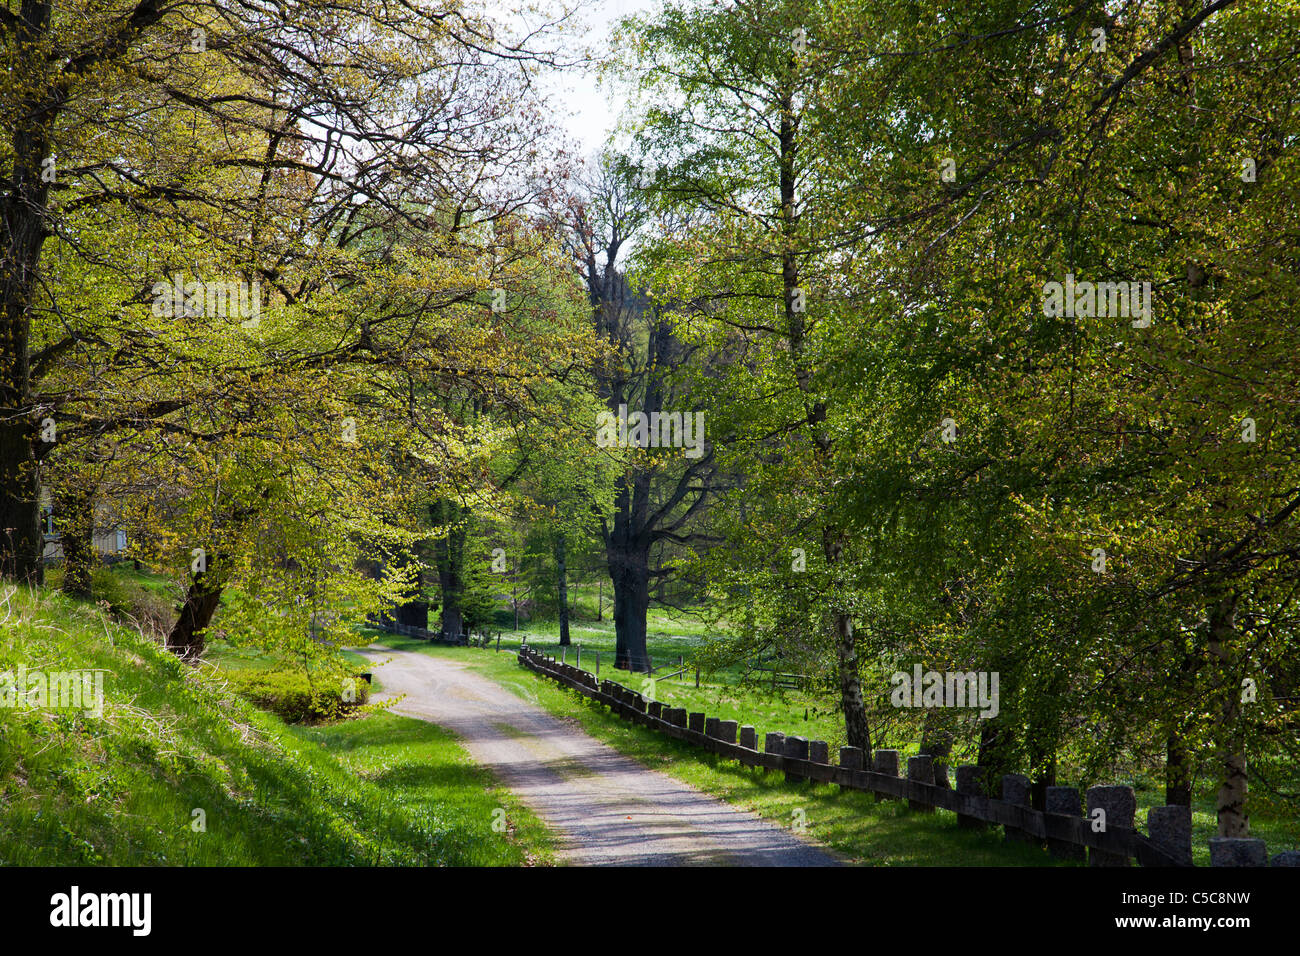 Country road lane through spring green landscape Sweden - Stock Image